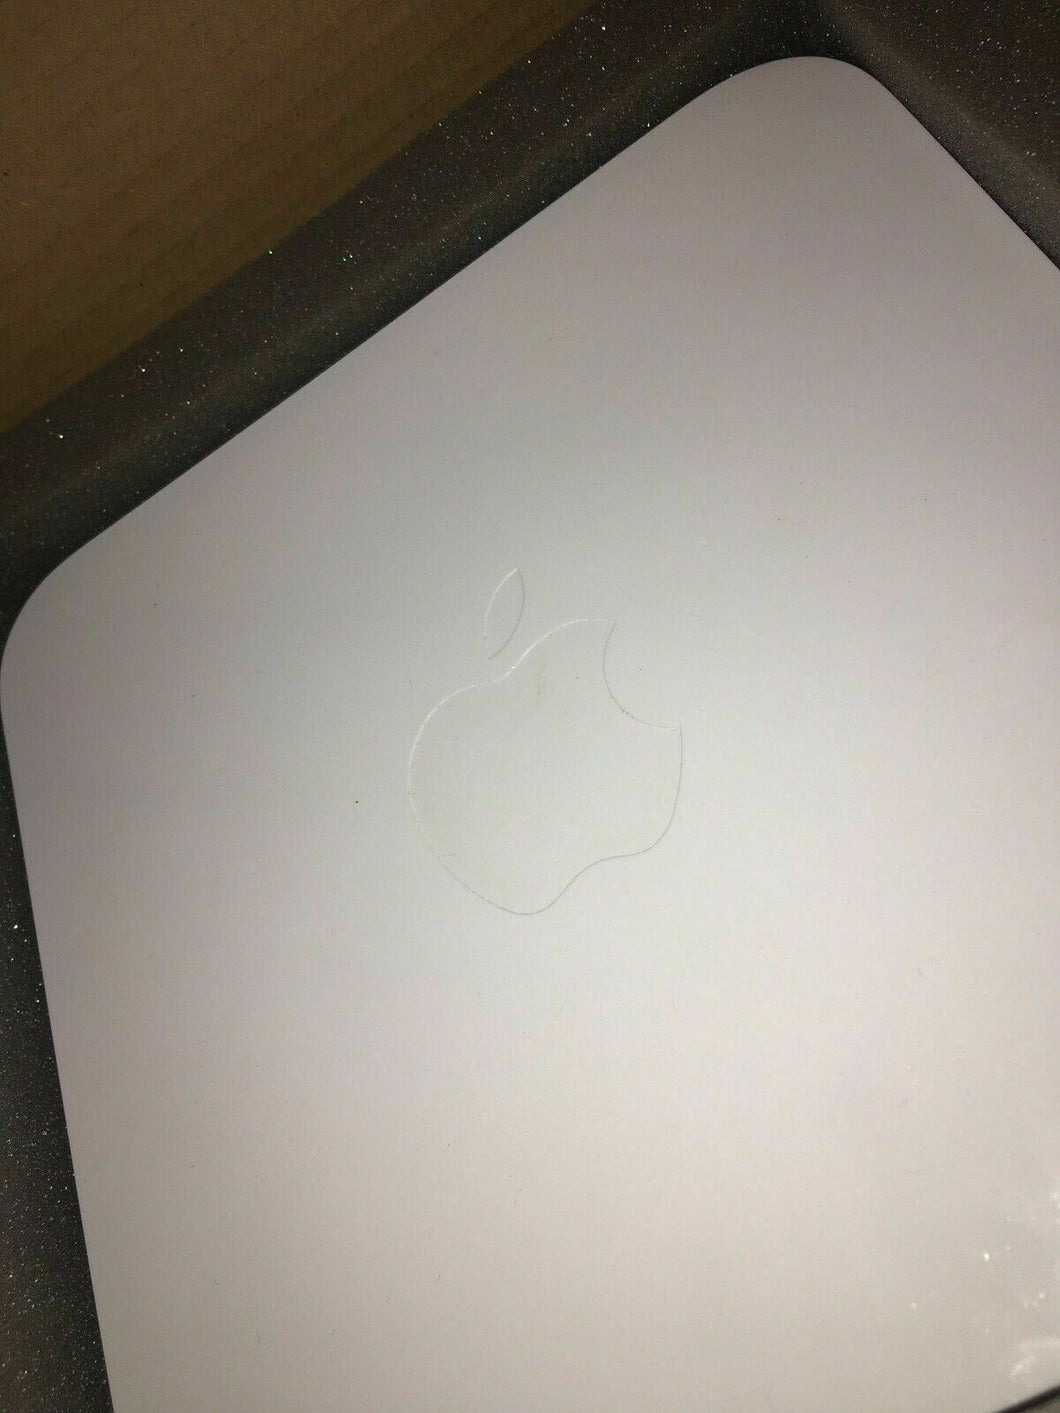 Apple Airport Extreme Base Station A1301 Compact Internet Router 4708